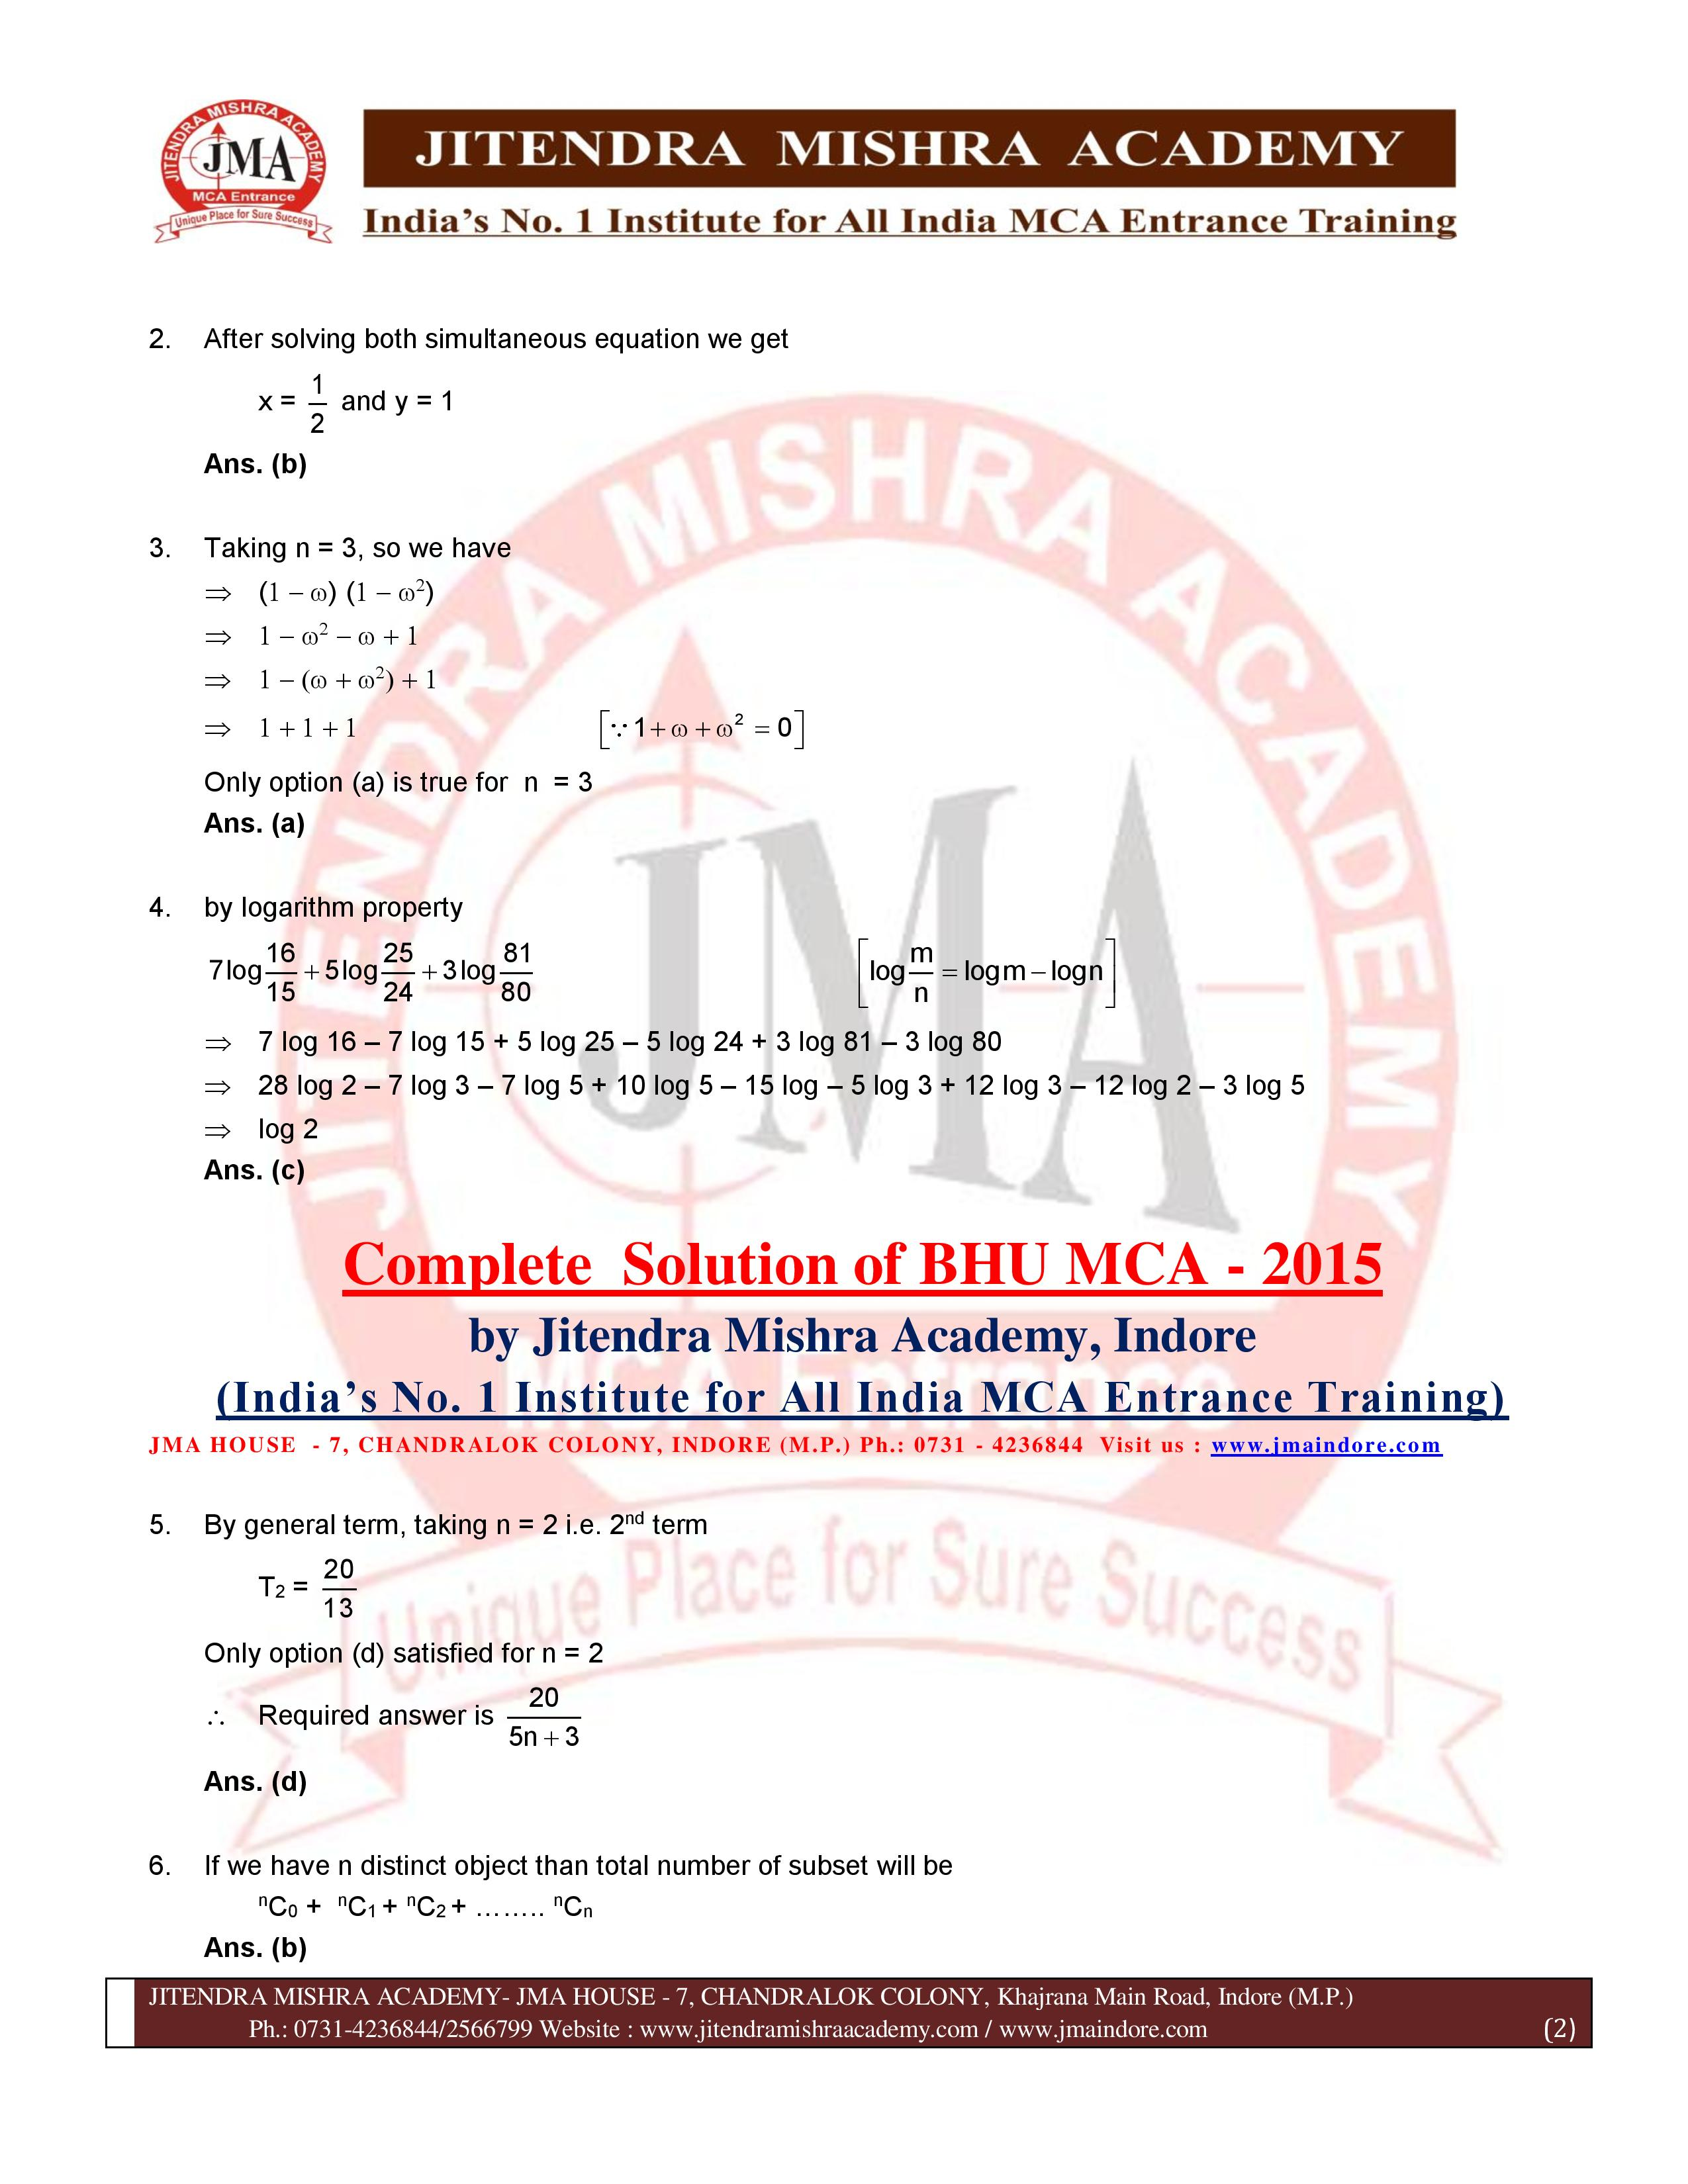 BHU 2015 SOLUTION (SET - 1) (29.06.16)-page-002